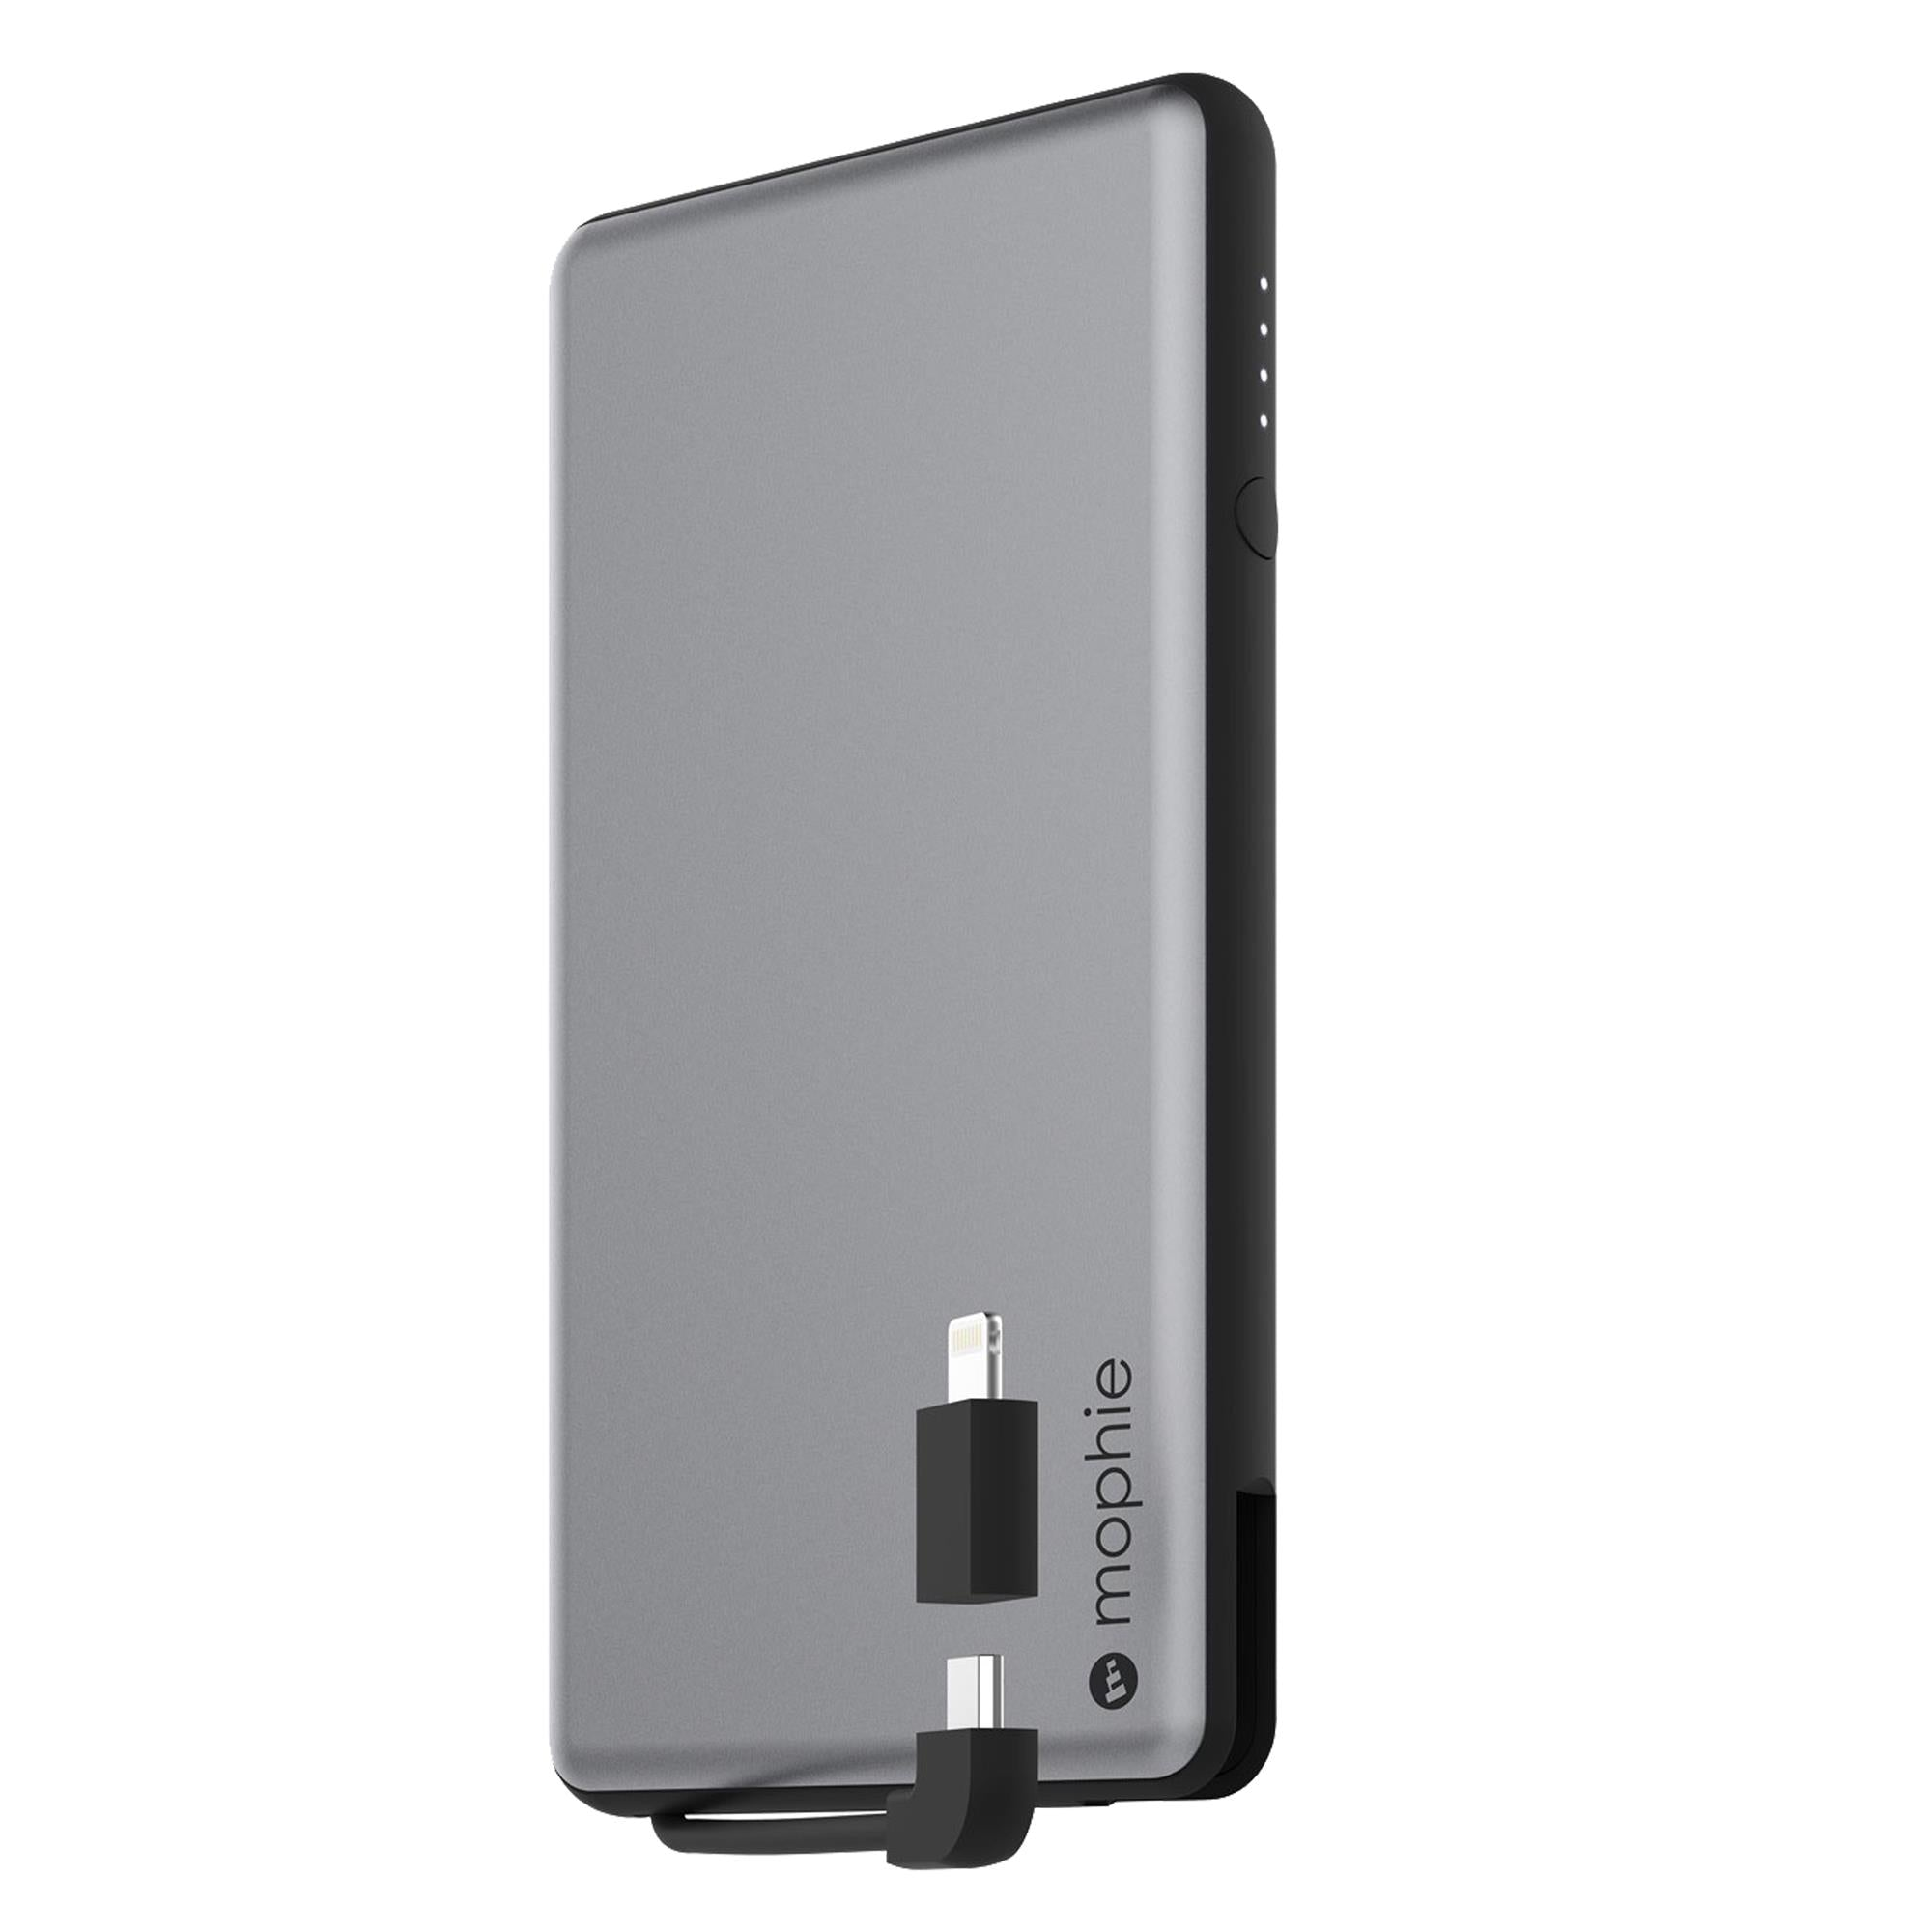 Powerstation Plus Mini - Space Gray (4,000mAh)